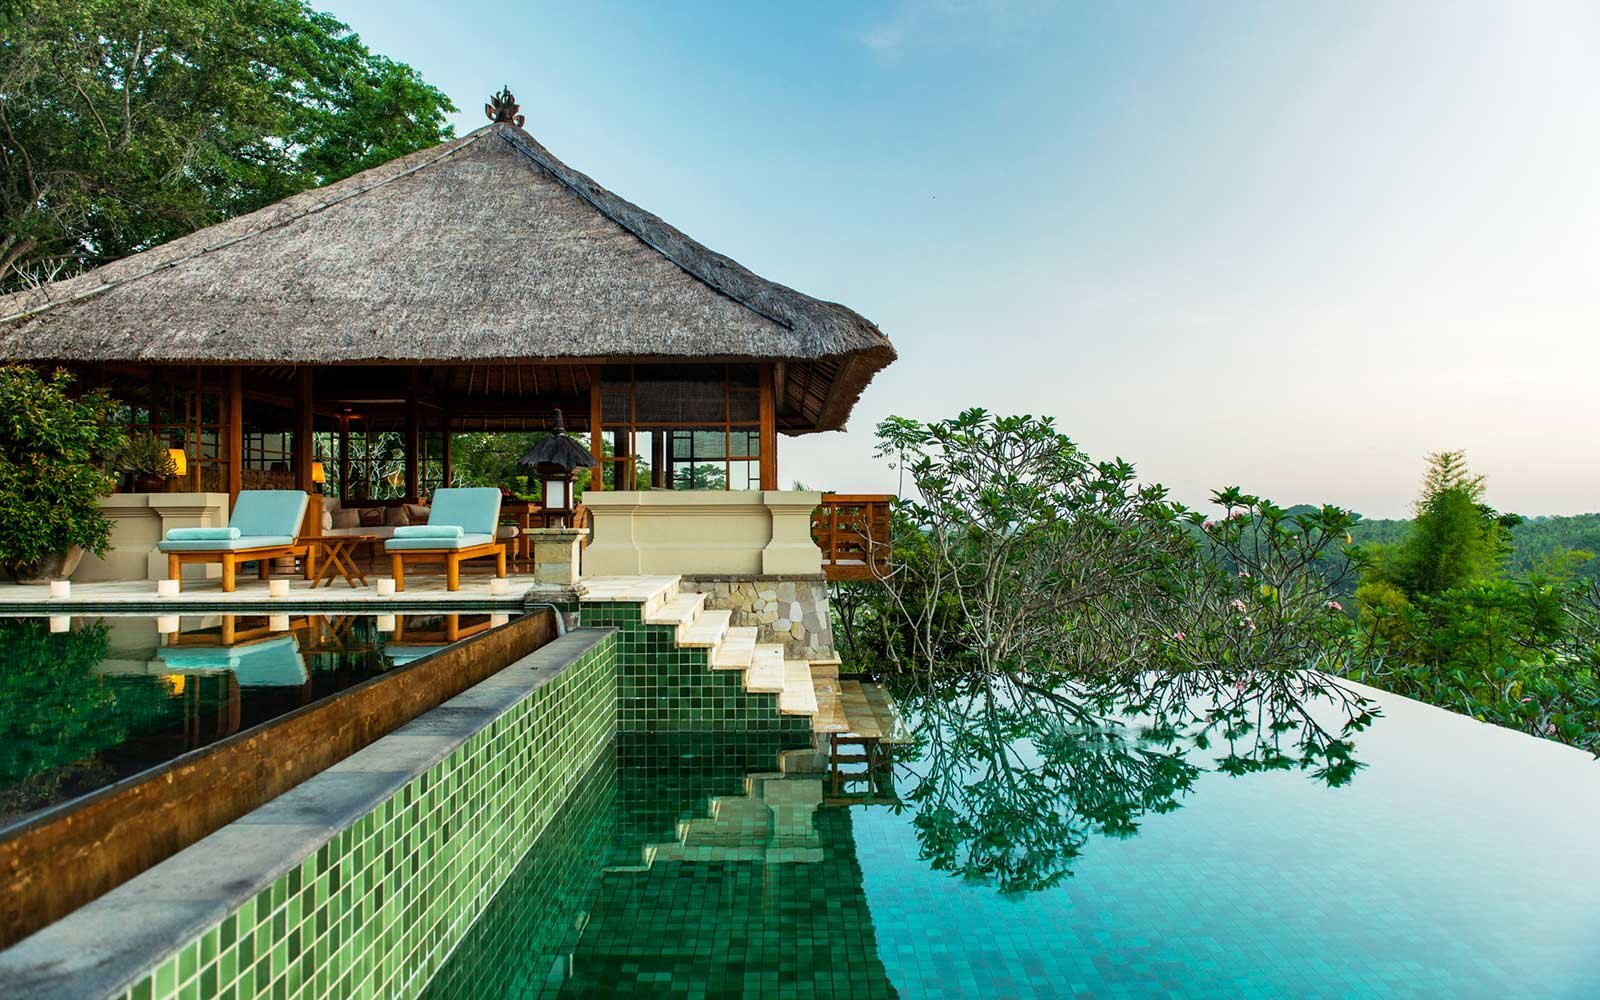 Amandari Resort Hotel in Indonesia